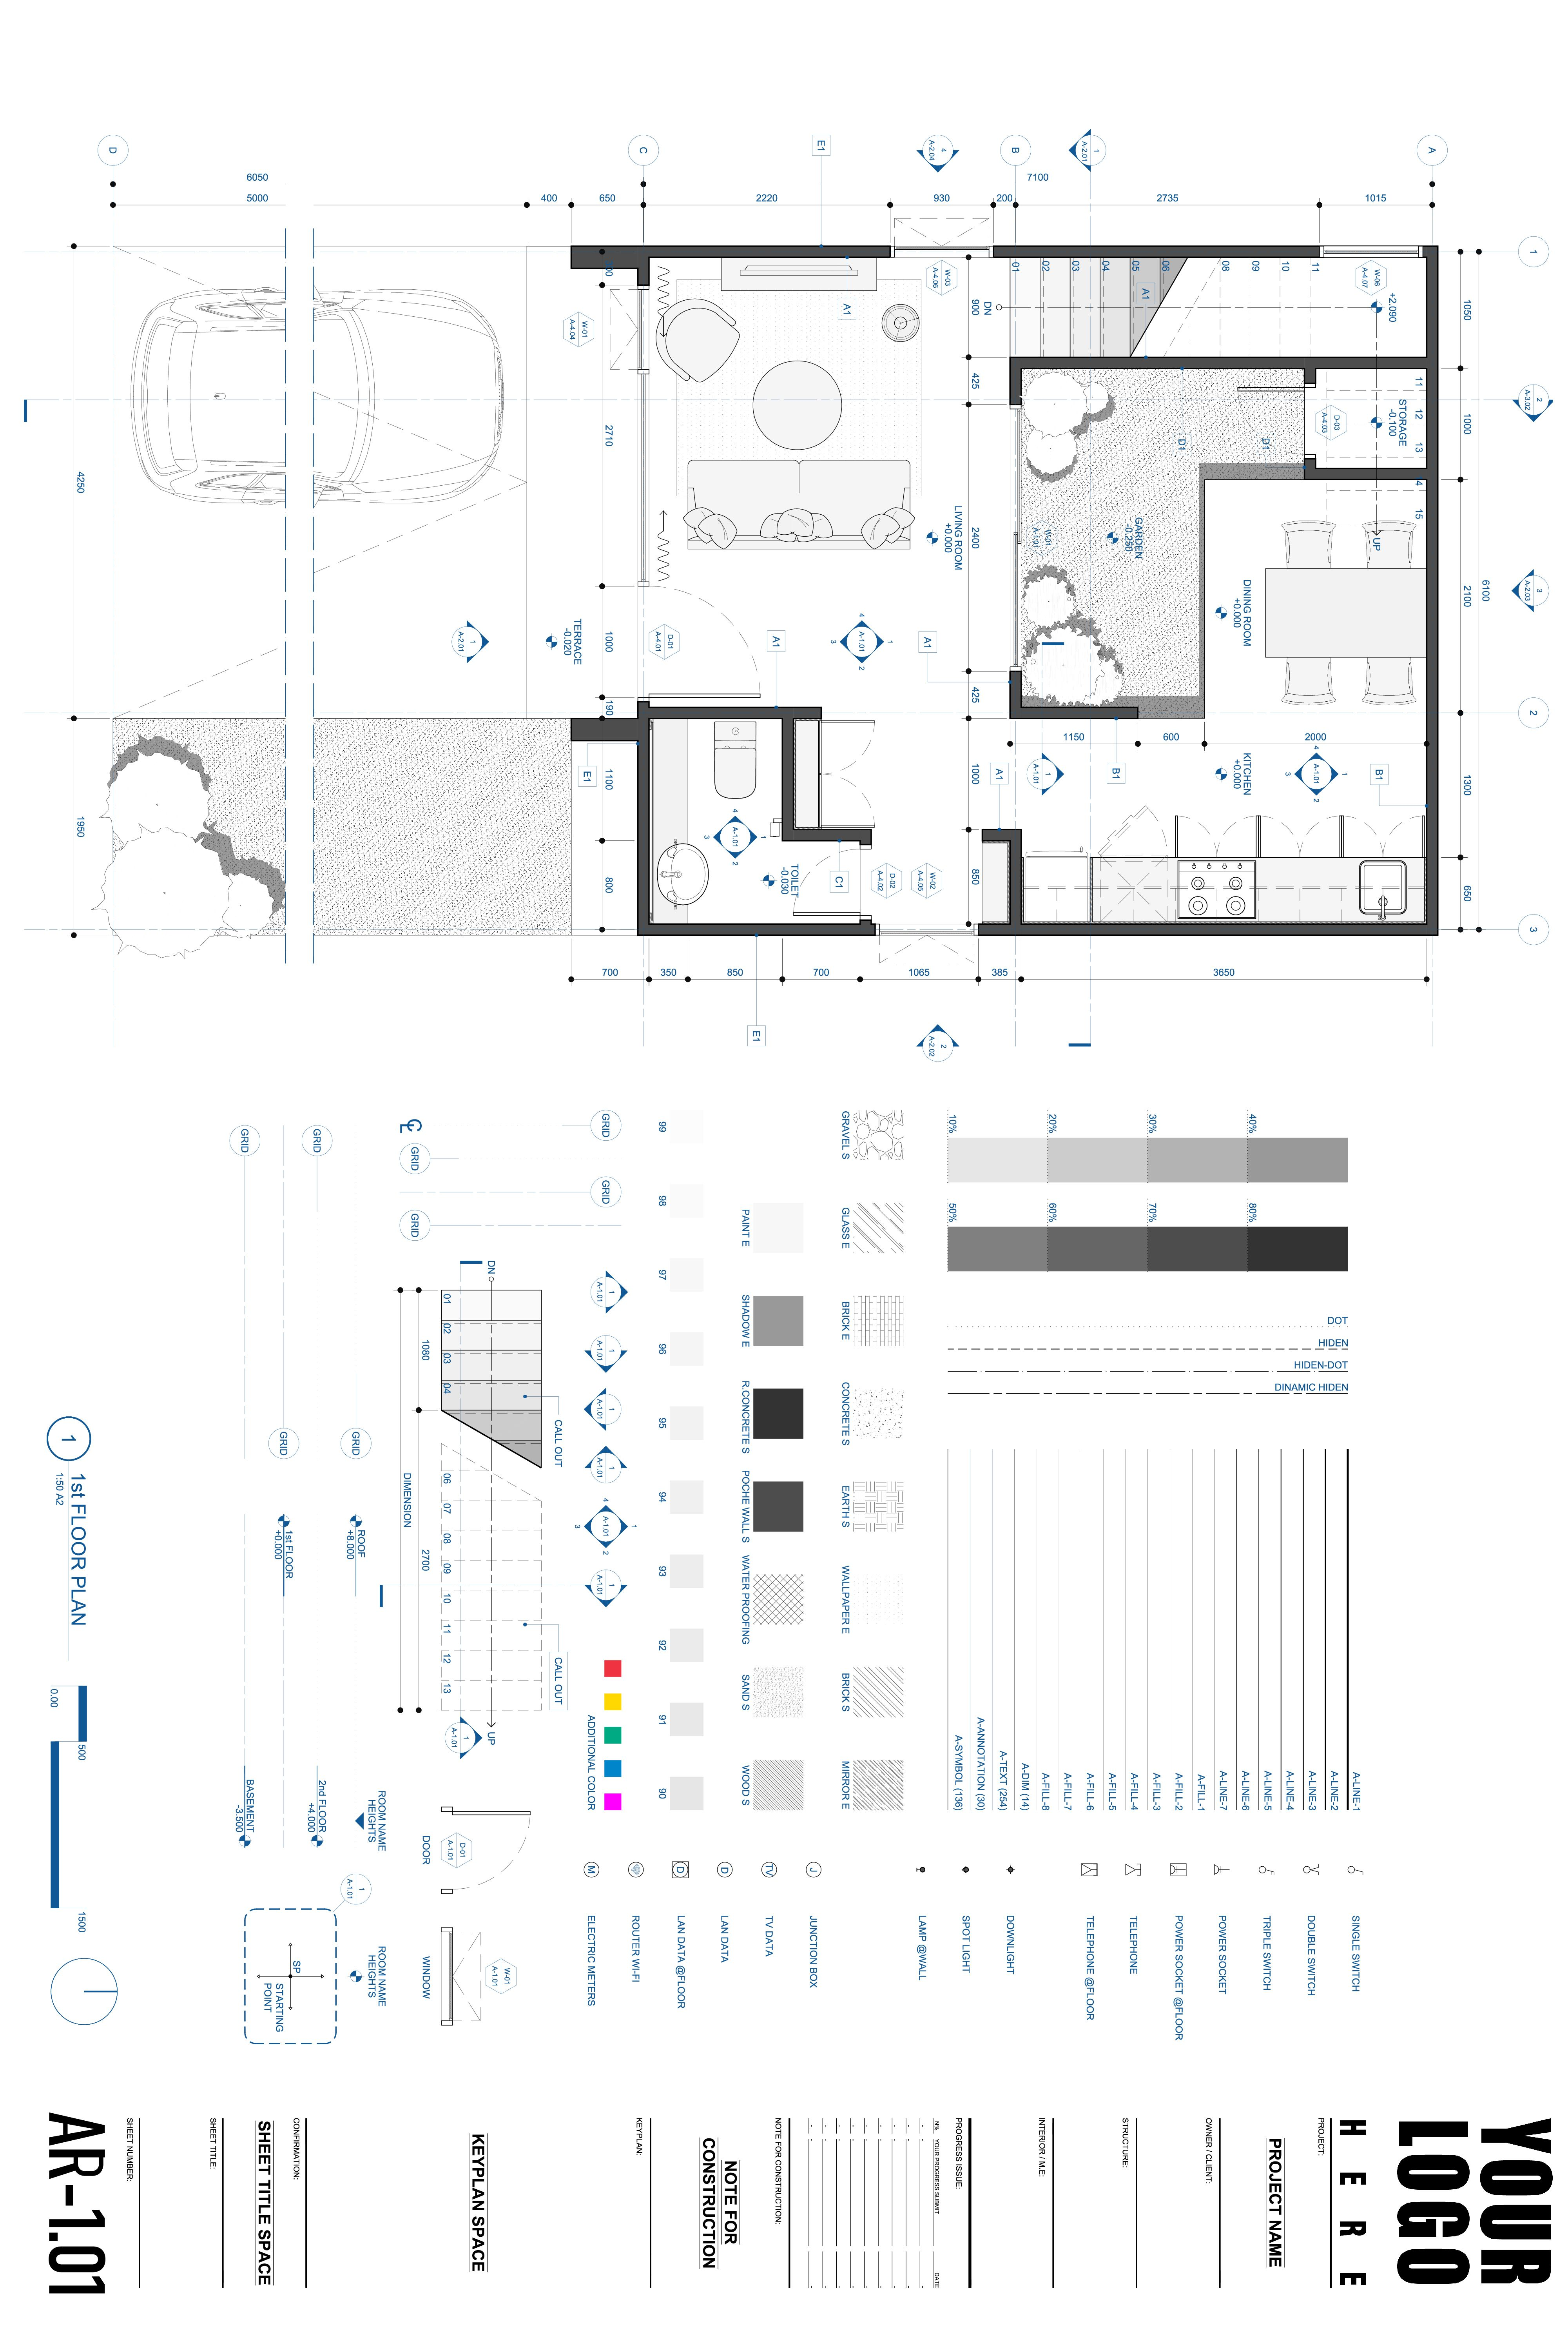 Autocad Template Architecture Drawing Architecture Drawing Plan Autocad Layout Autocad